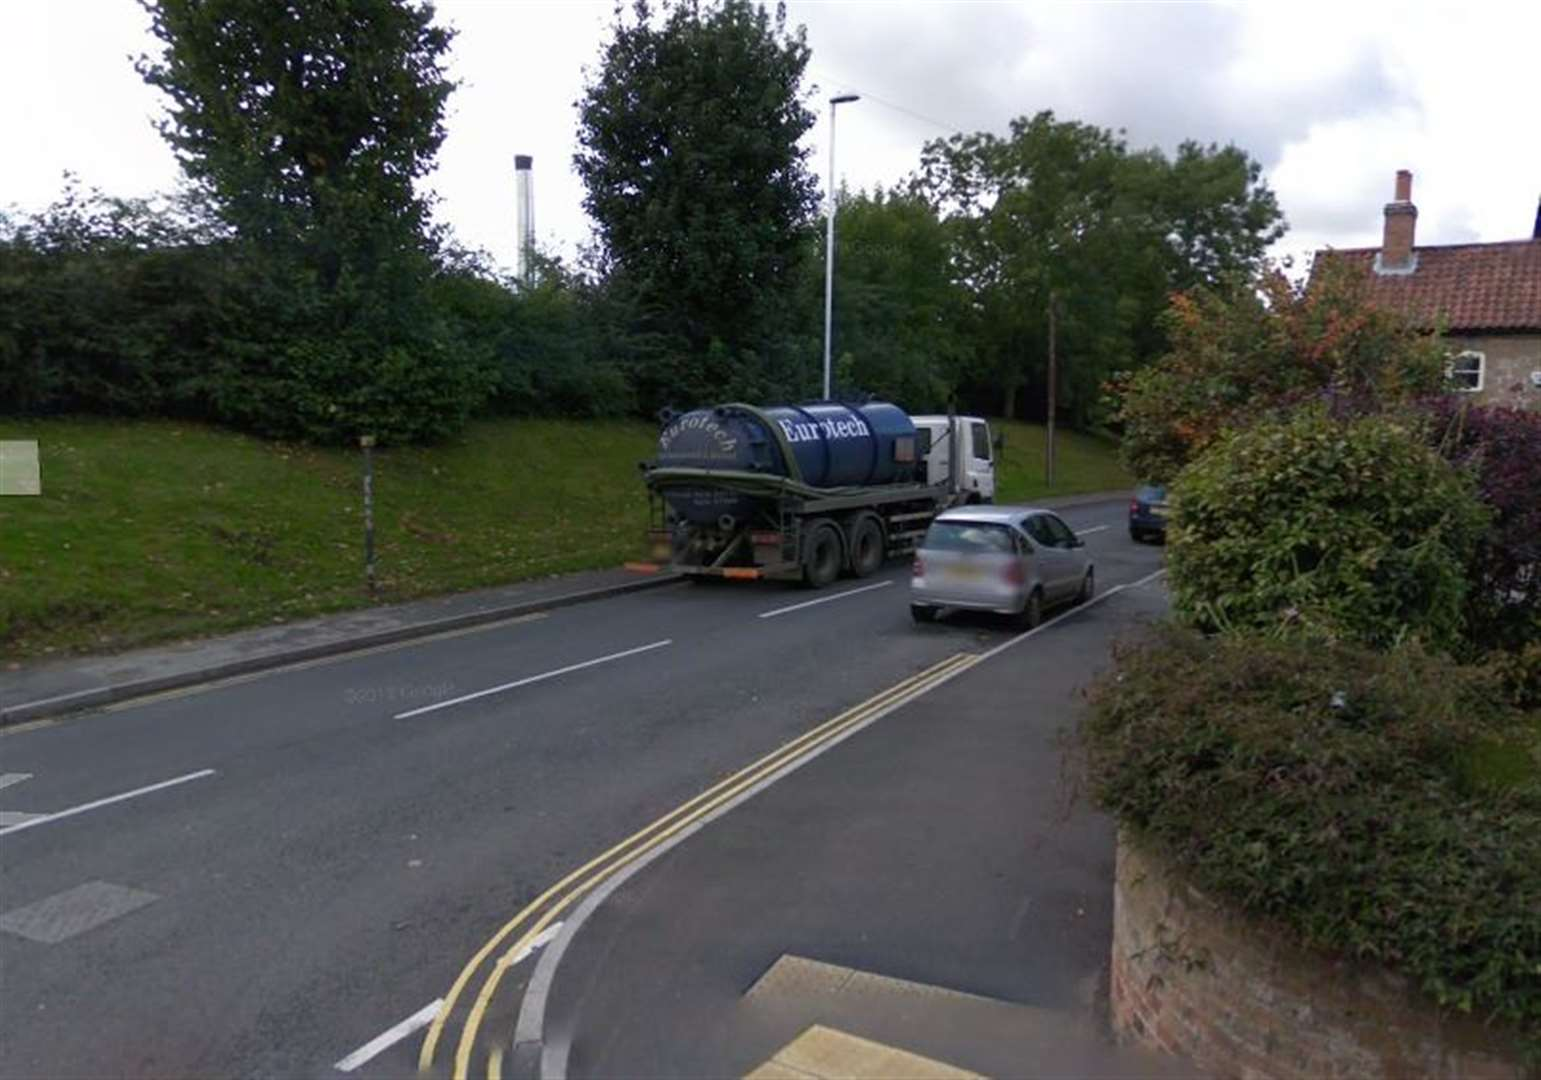 Council looks to tackle 'inconsiderate parking'